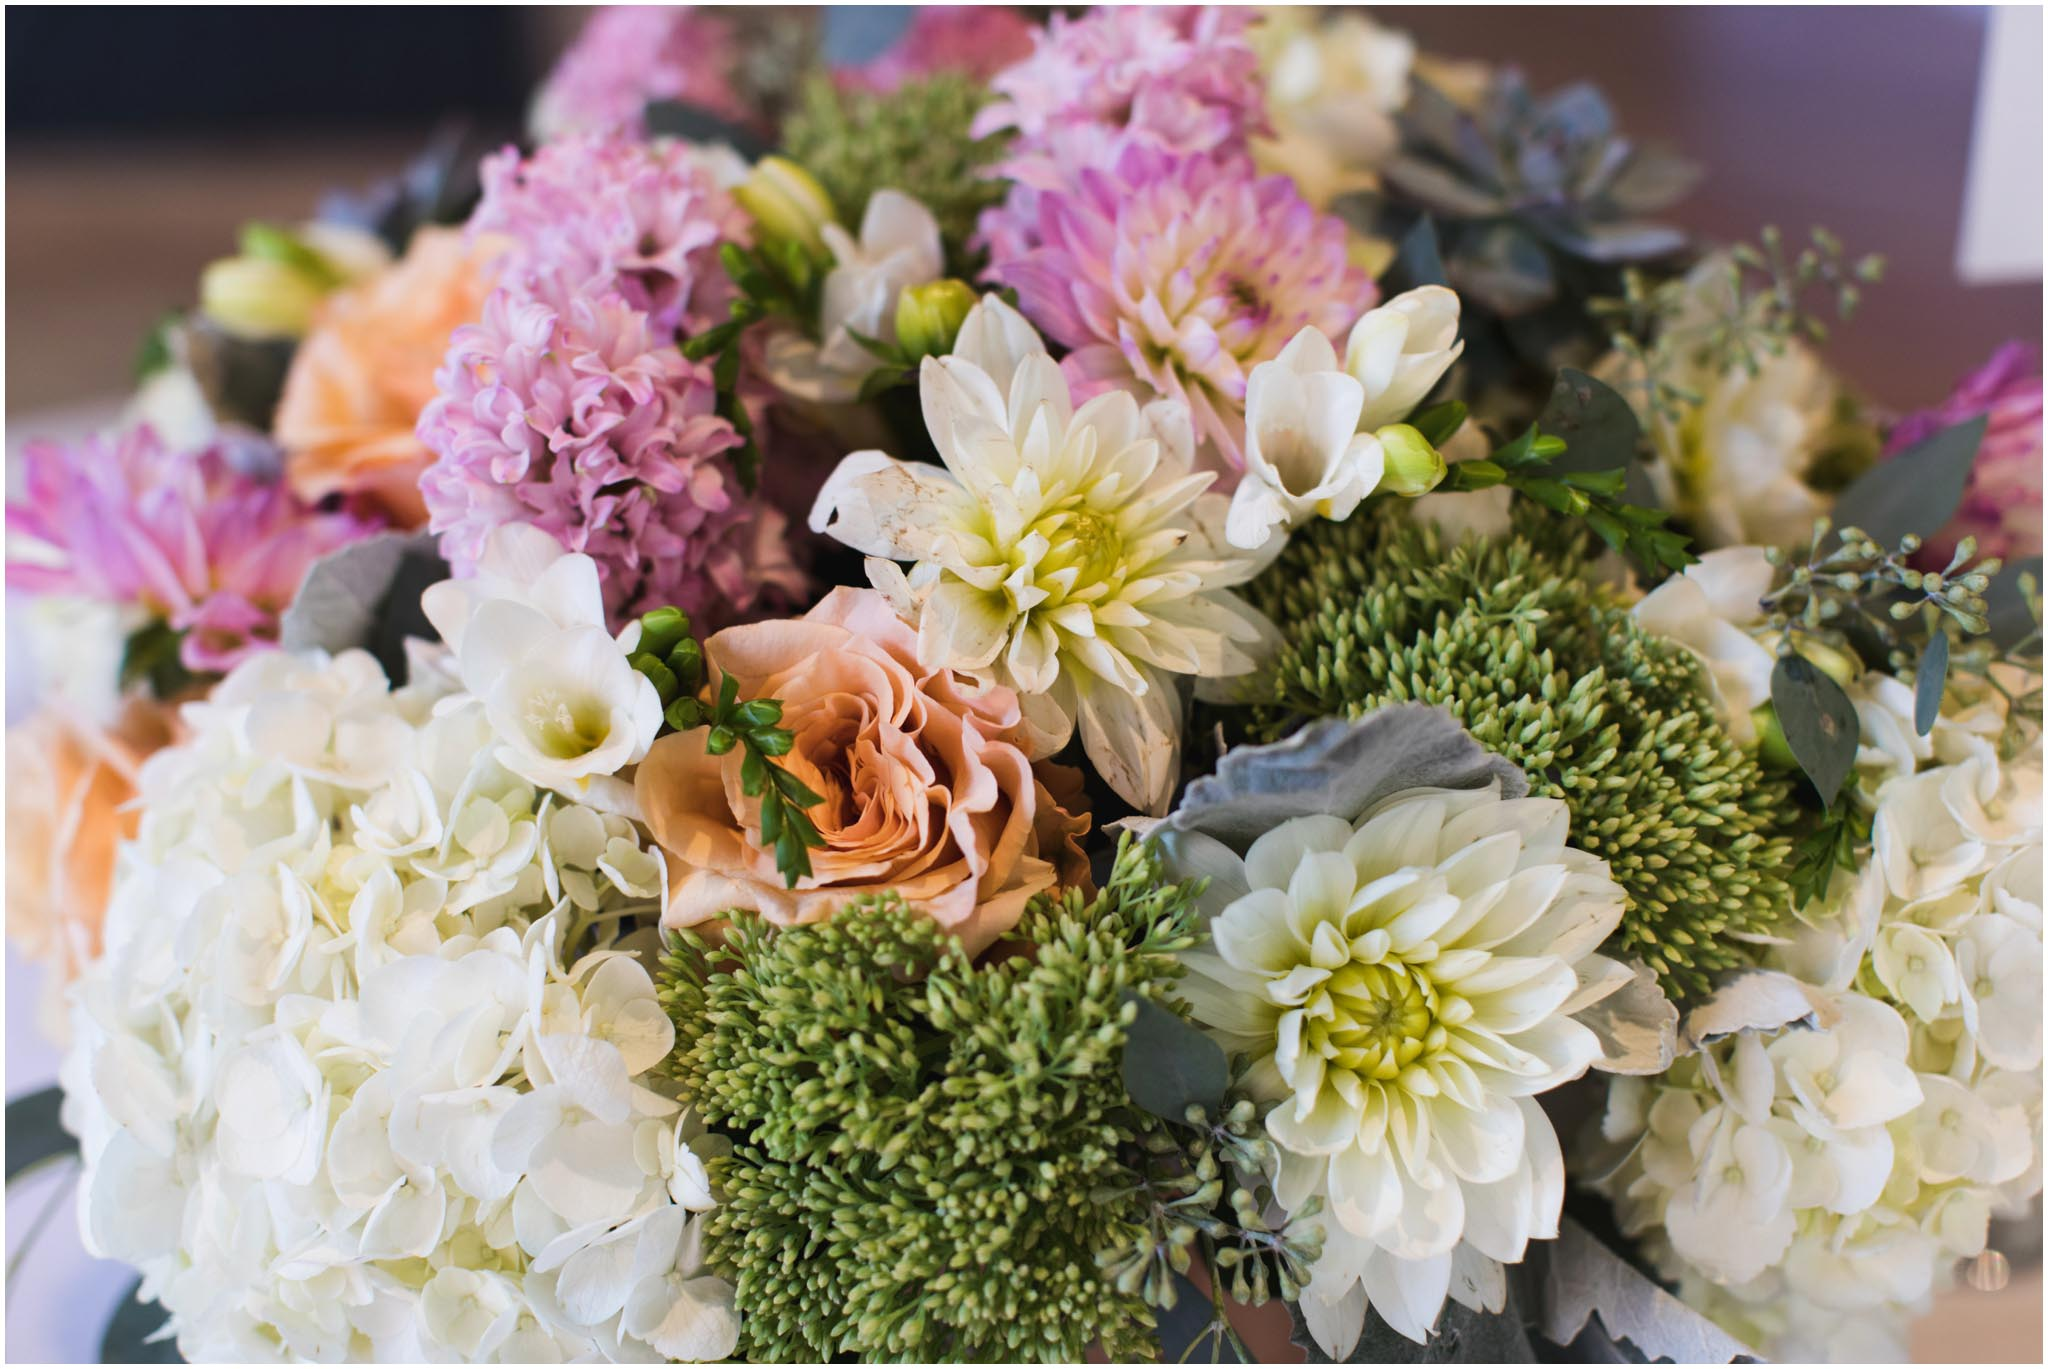 Julie's Flowers, wedding, Brooklyn, New York